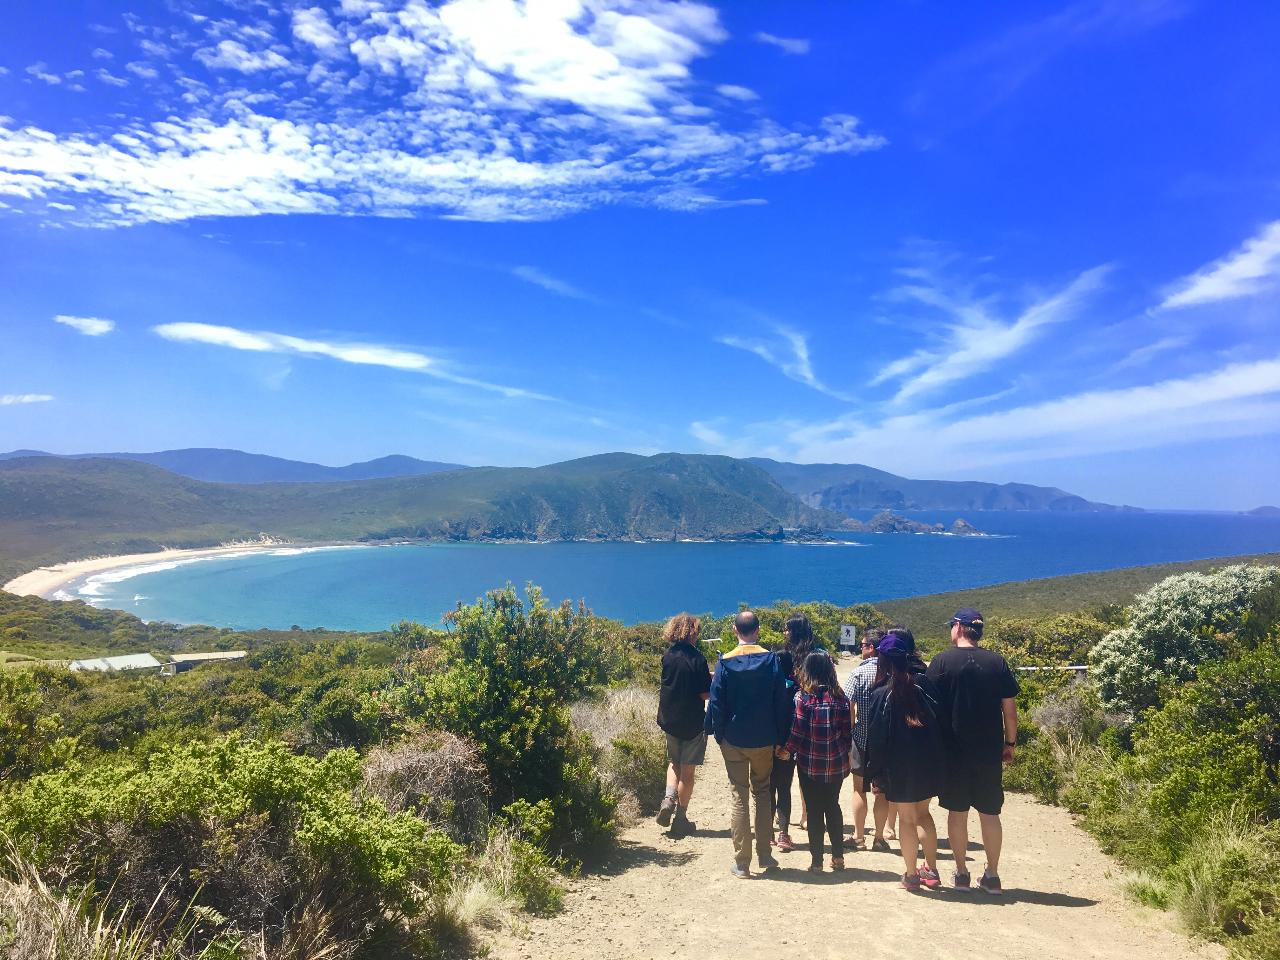 Cruise Ship Shore Excursion - Bruny Island Tour 9 am to approx 6pm (Cruise Ship guests only)